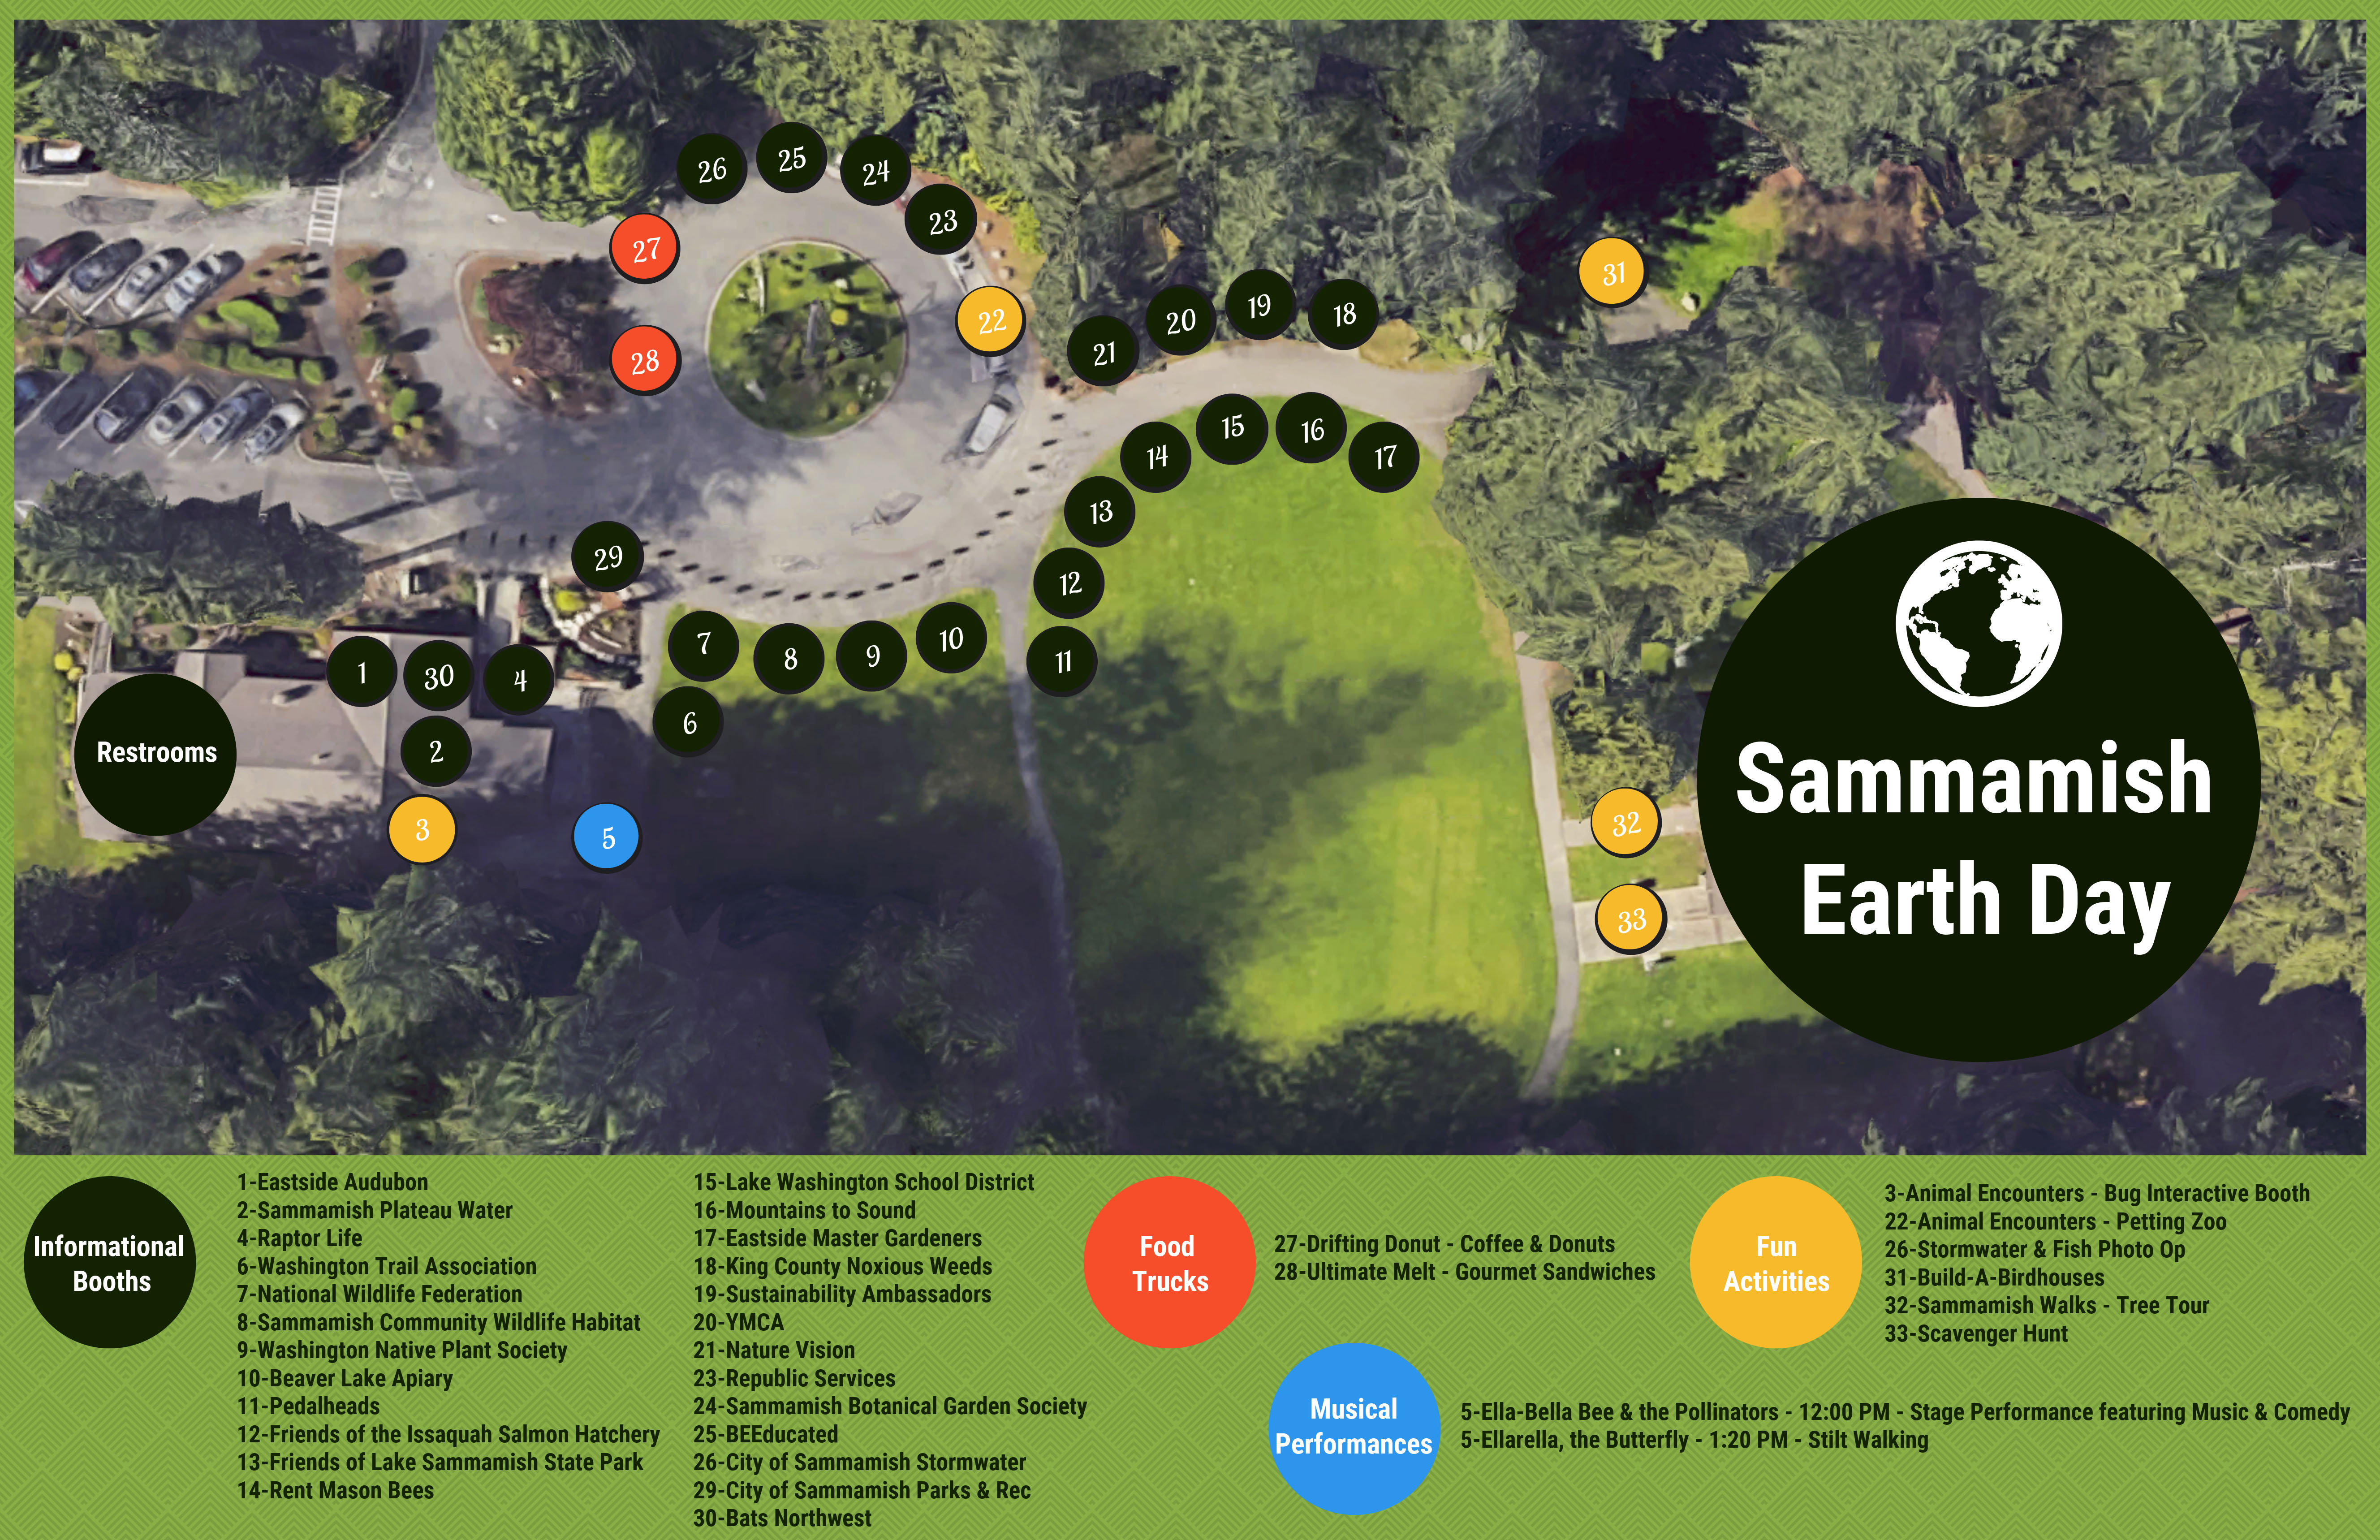 2019 Earth Day Site Map2.jpg